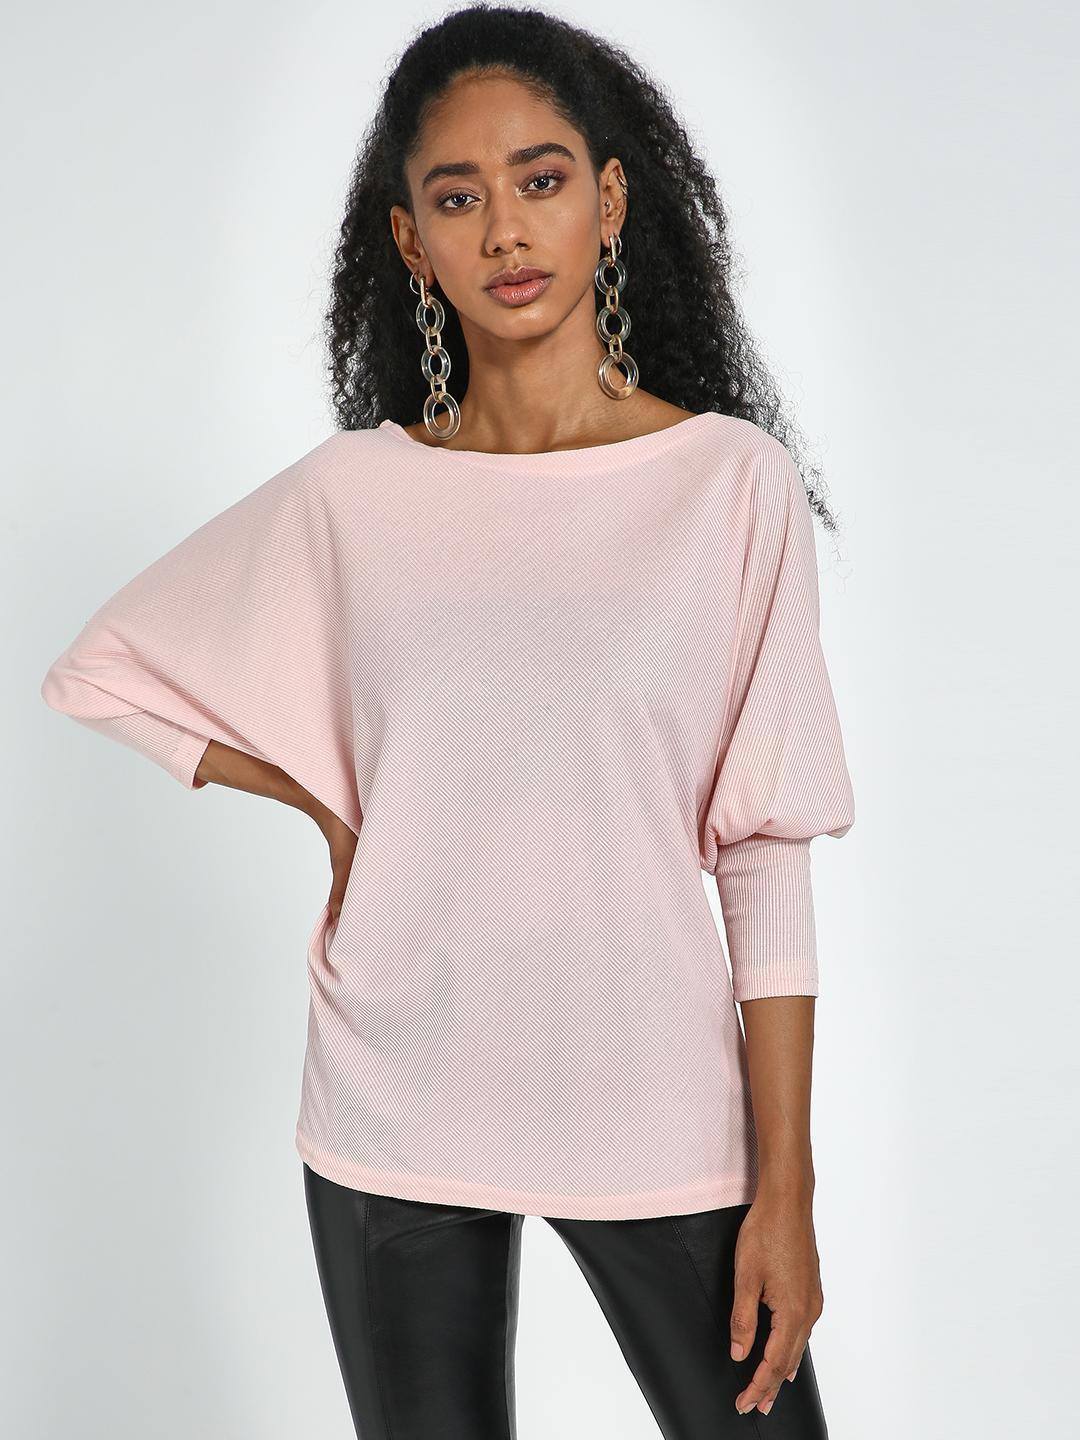 Blue Saint Pink Pink Round Neck Bishop Sleeves Pullover 1